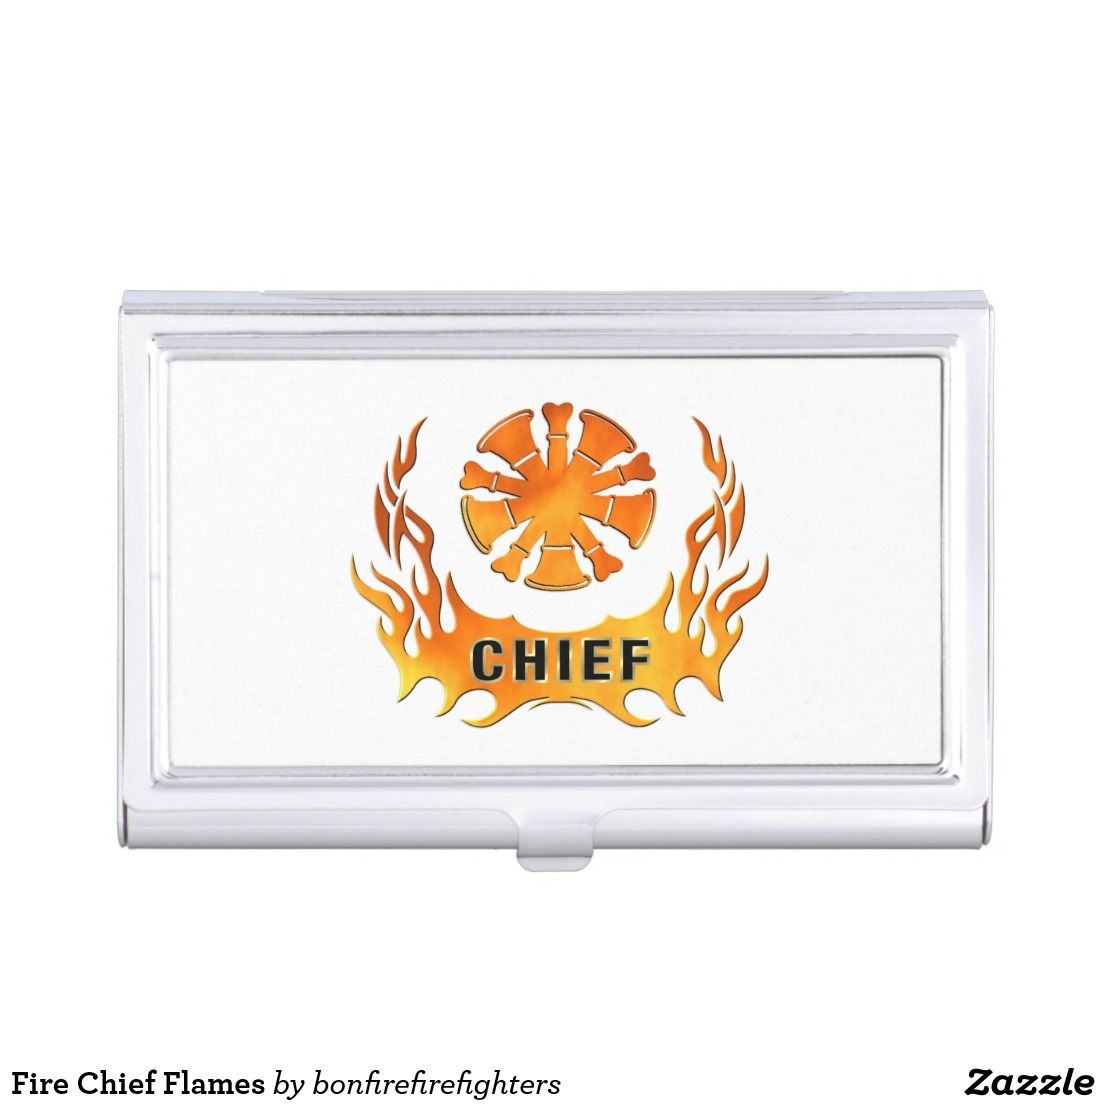 Fire Chief Flames Case For Business Cards | Firefighter